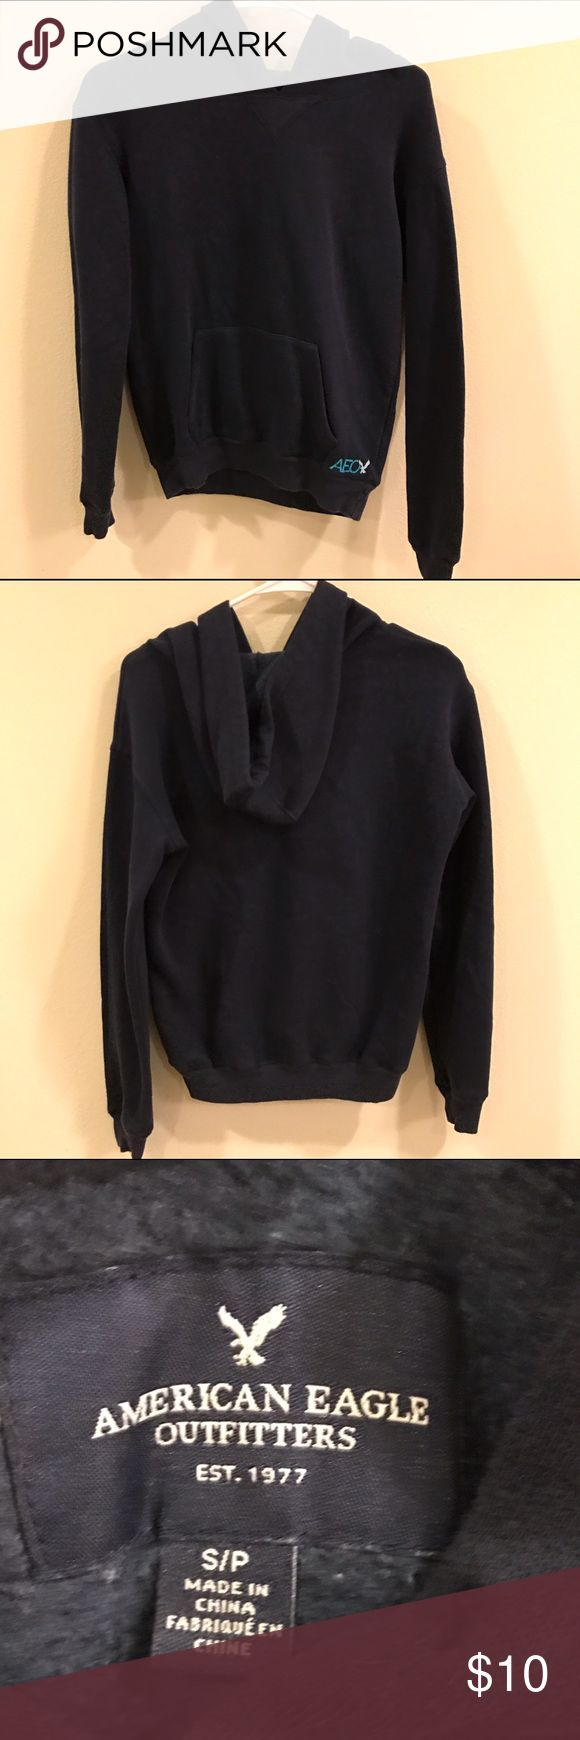 American Eagle Outfitters navy hoodie Worn a couple times. Great condition. American Eagle Outfitters Tops Sweatshirts & Hoodies